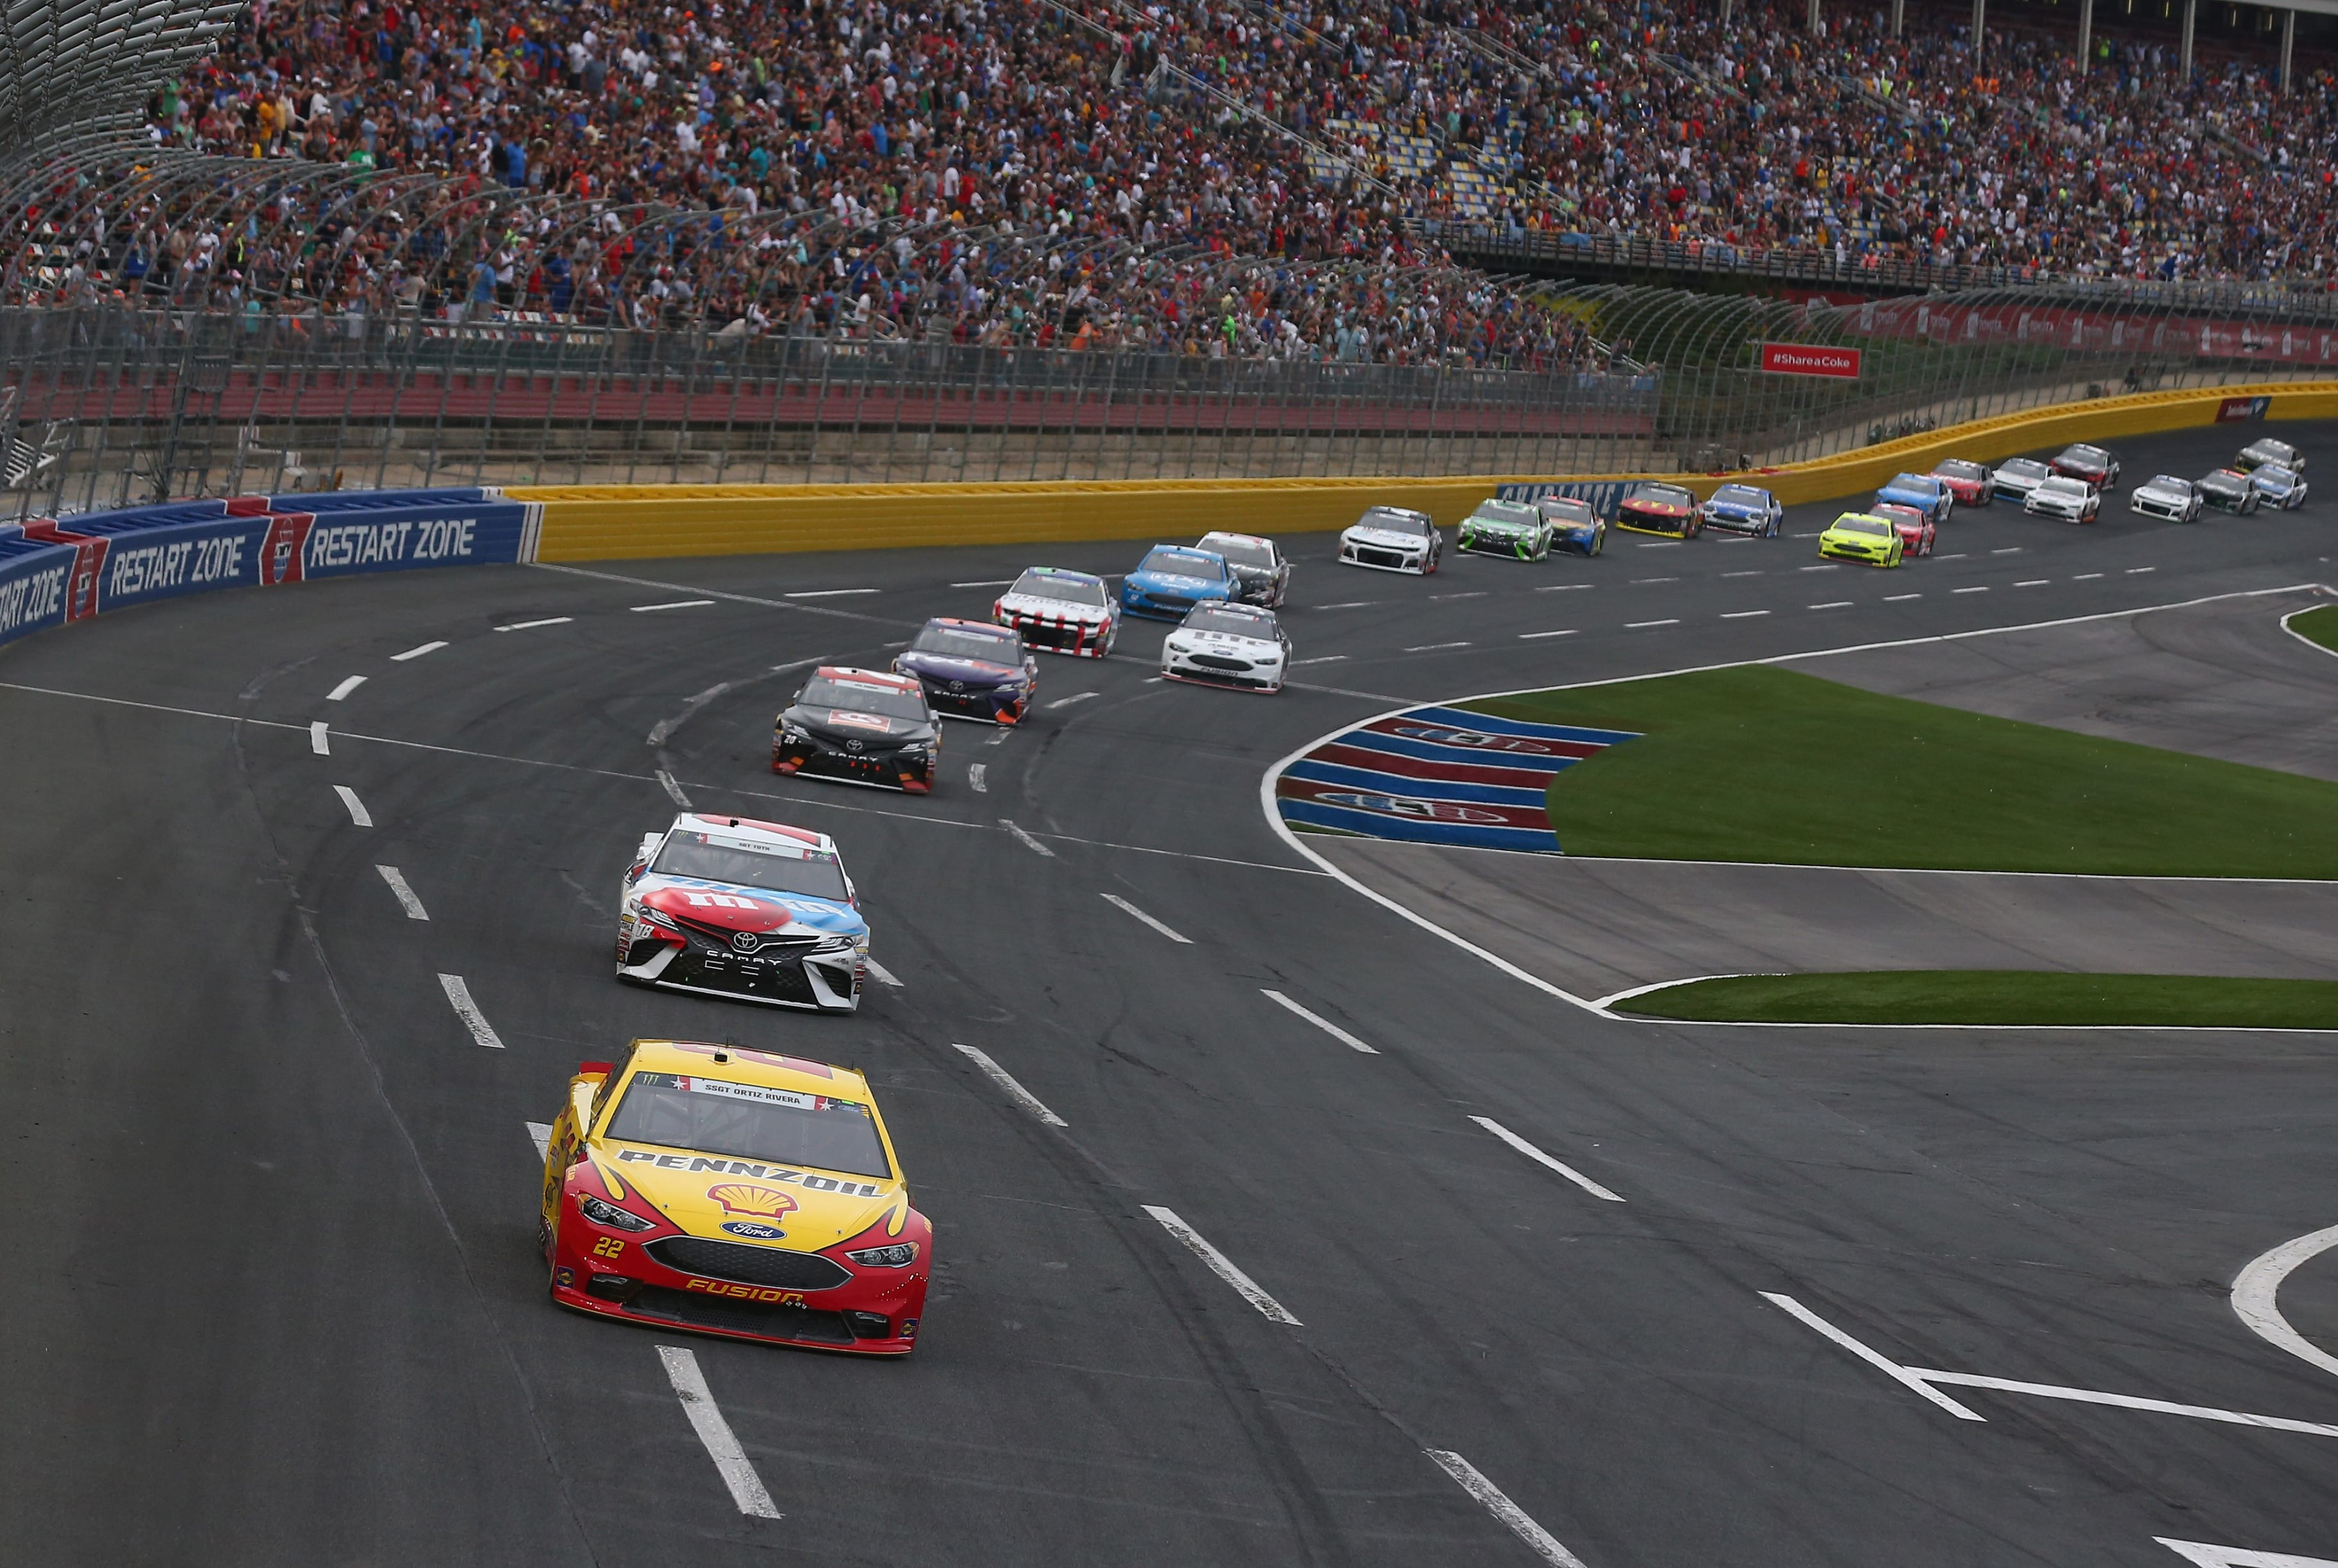 Joey Logano leads Kyle Busch in the Coca-Cola 600 at Charlotte Motor Speedway